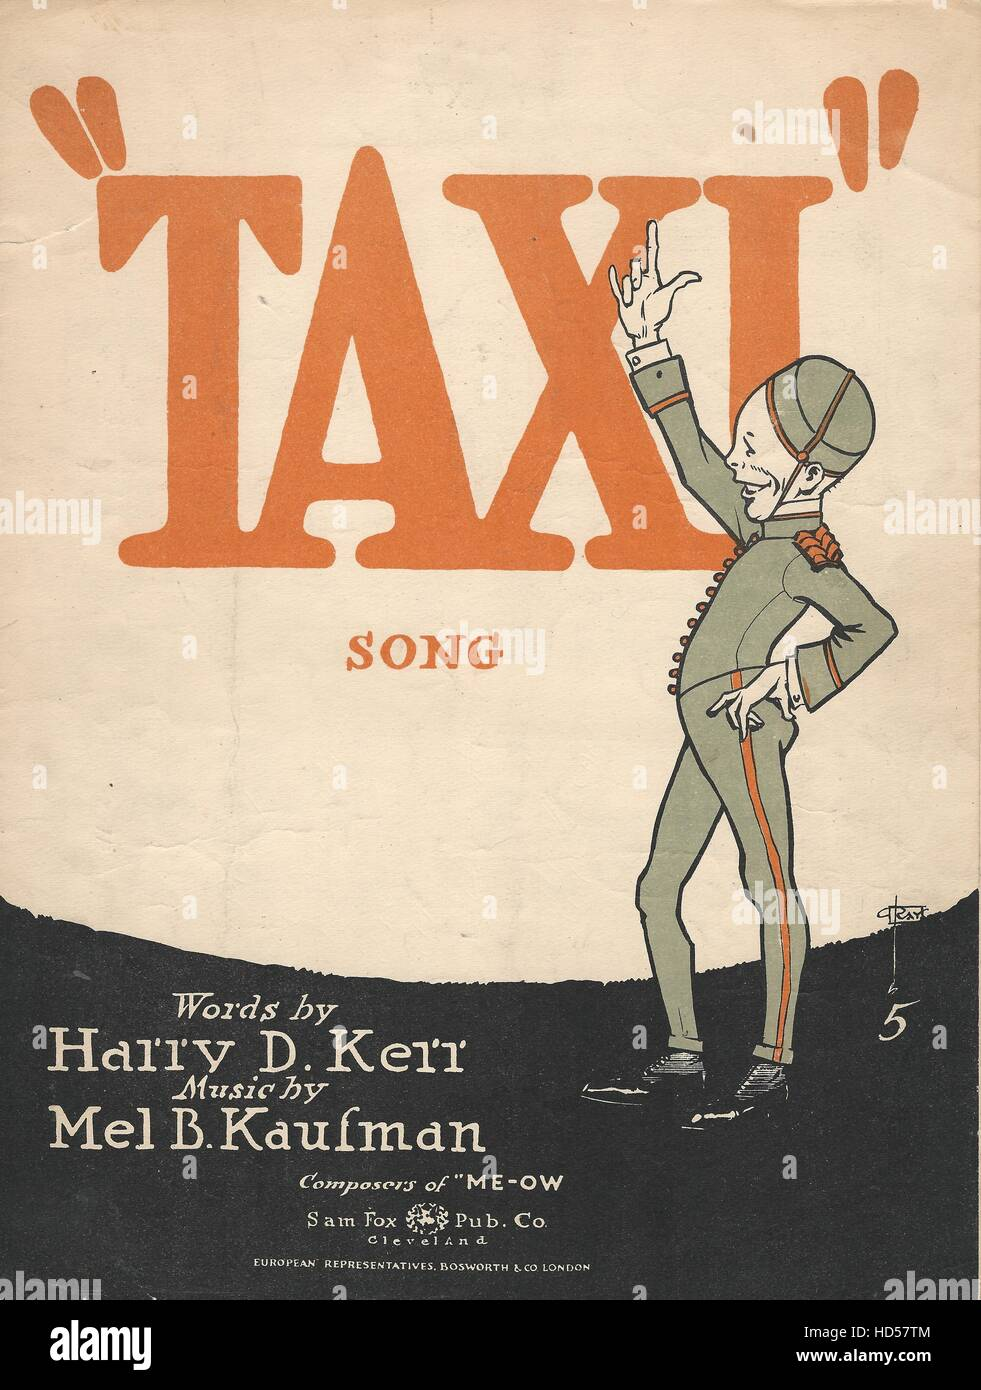 'Taxi' 1919 Bellhop or Bellboy Sheet Music Cover. - Stock Image